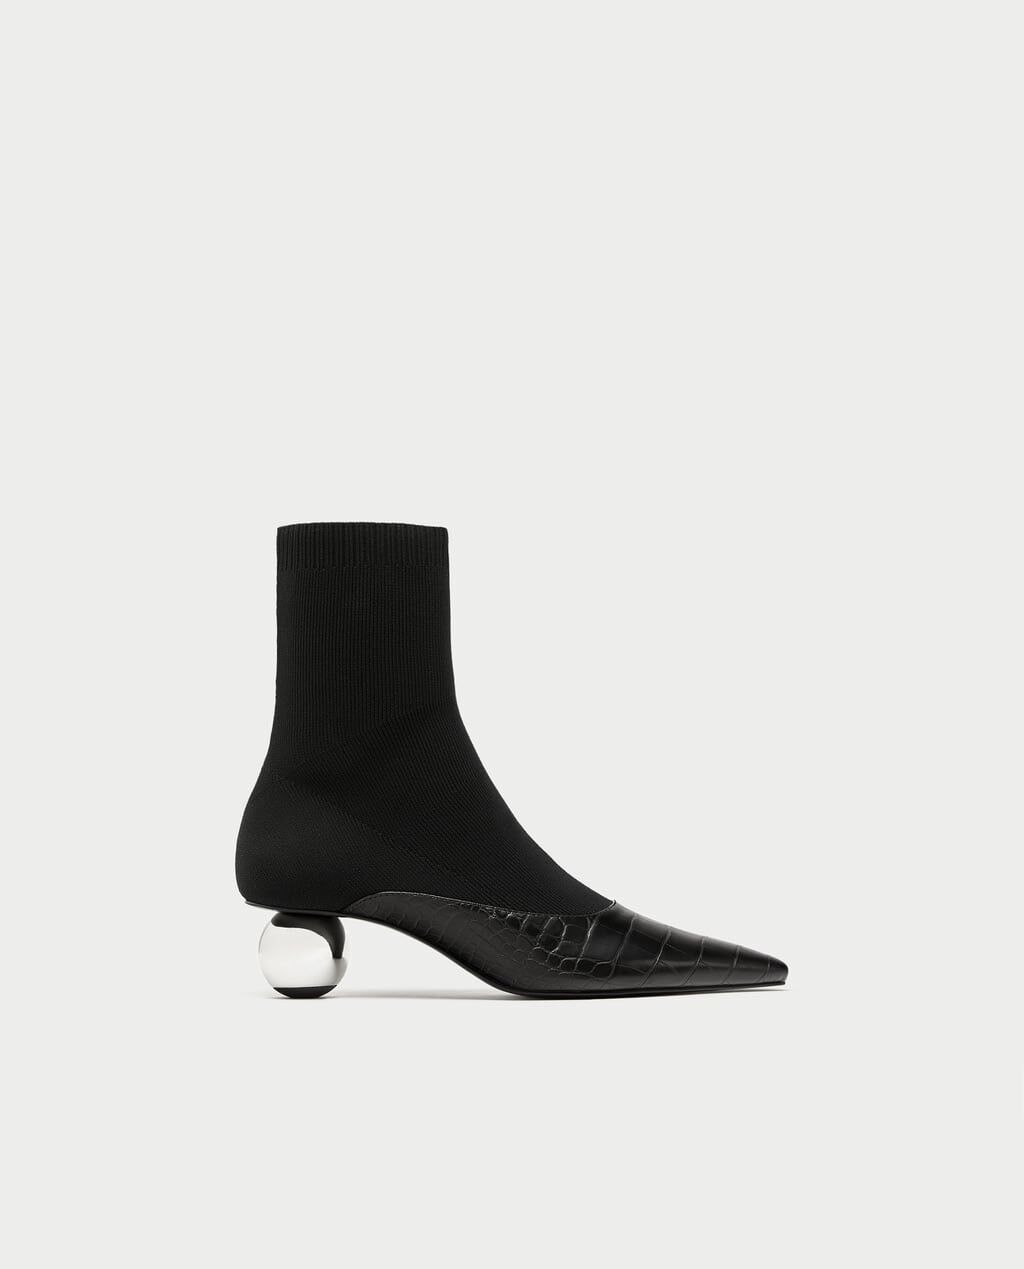 Zara Women Stretch Ankle Boots With Rounded High Heels Black Size 6 NWT